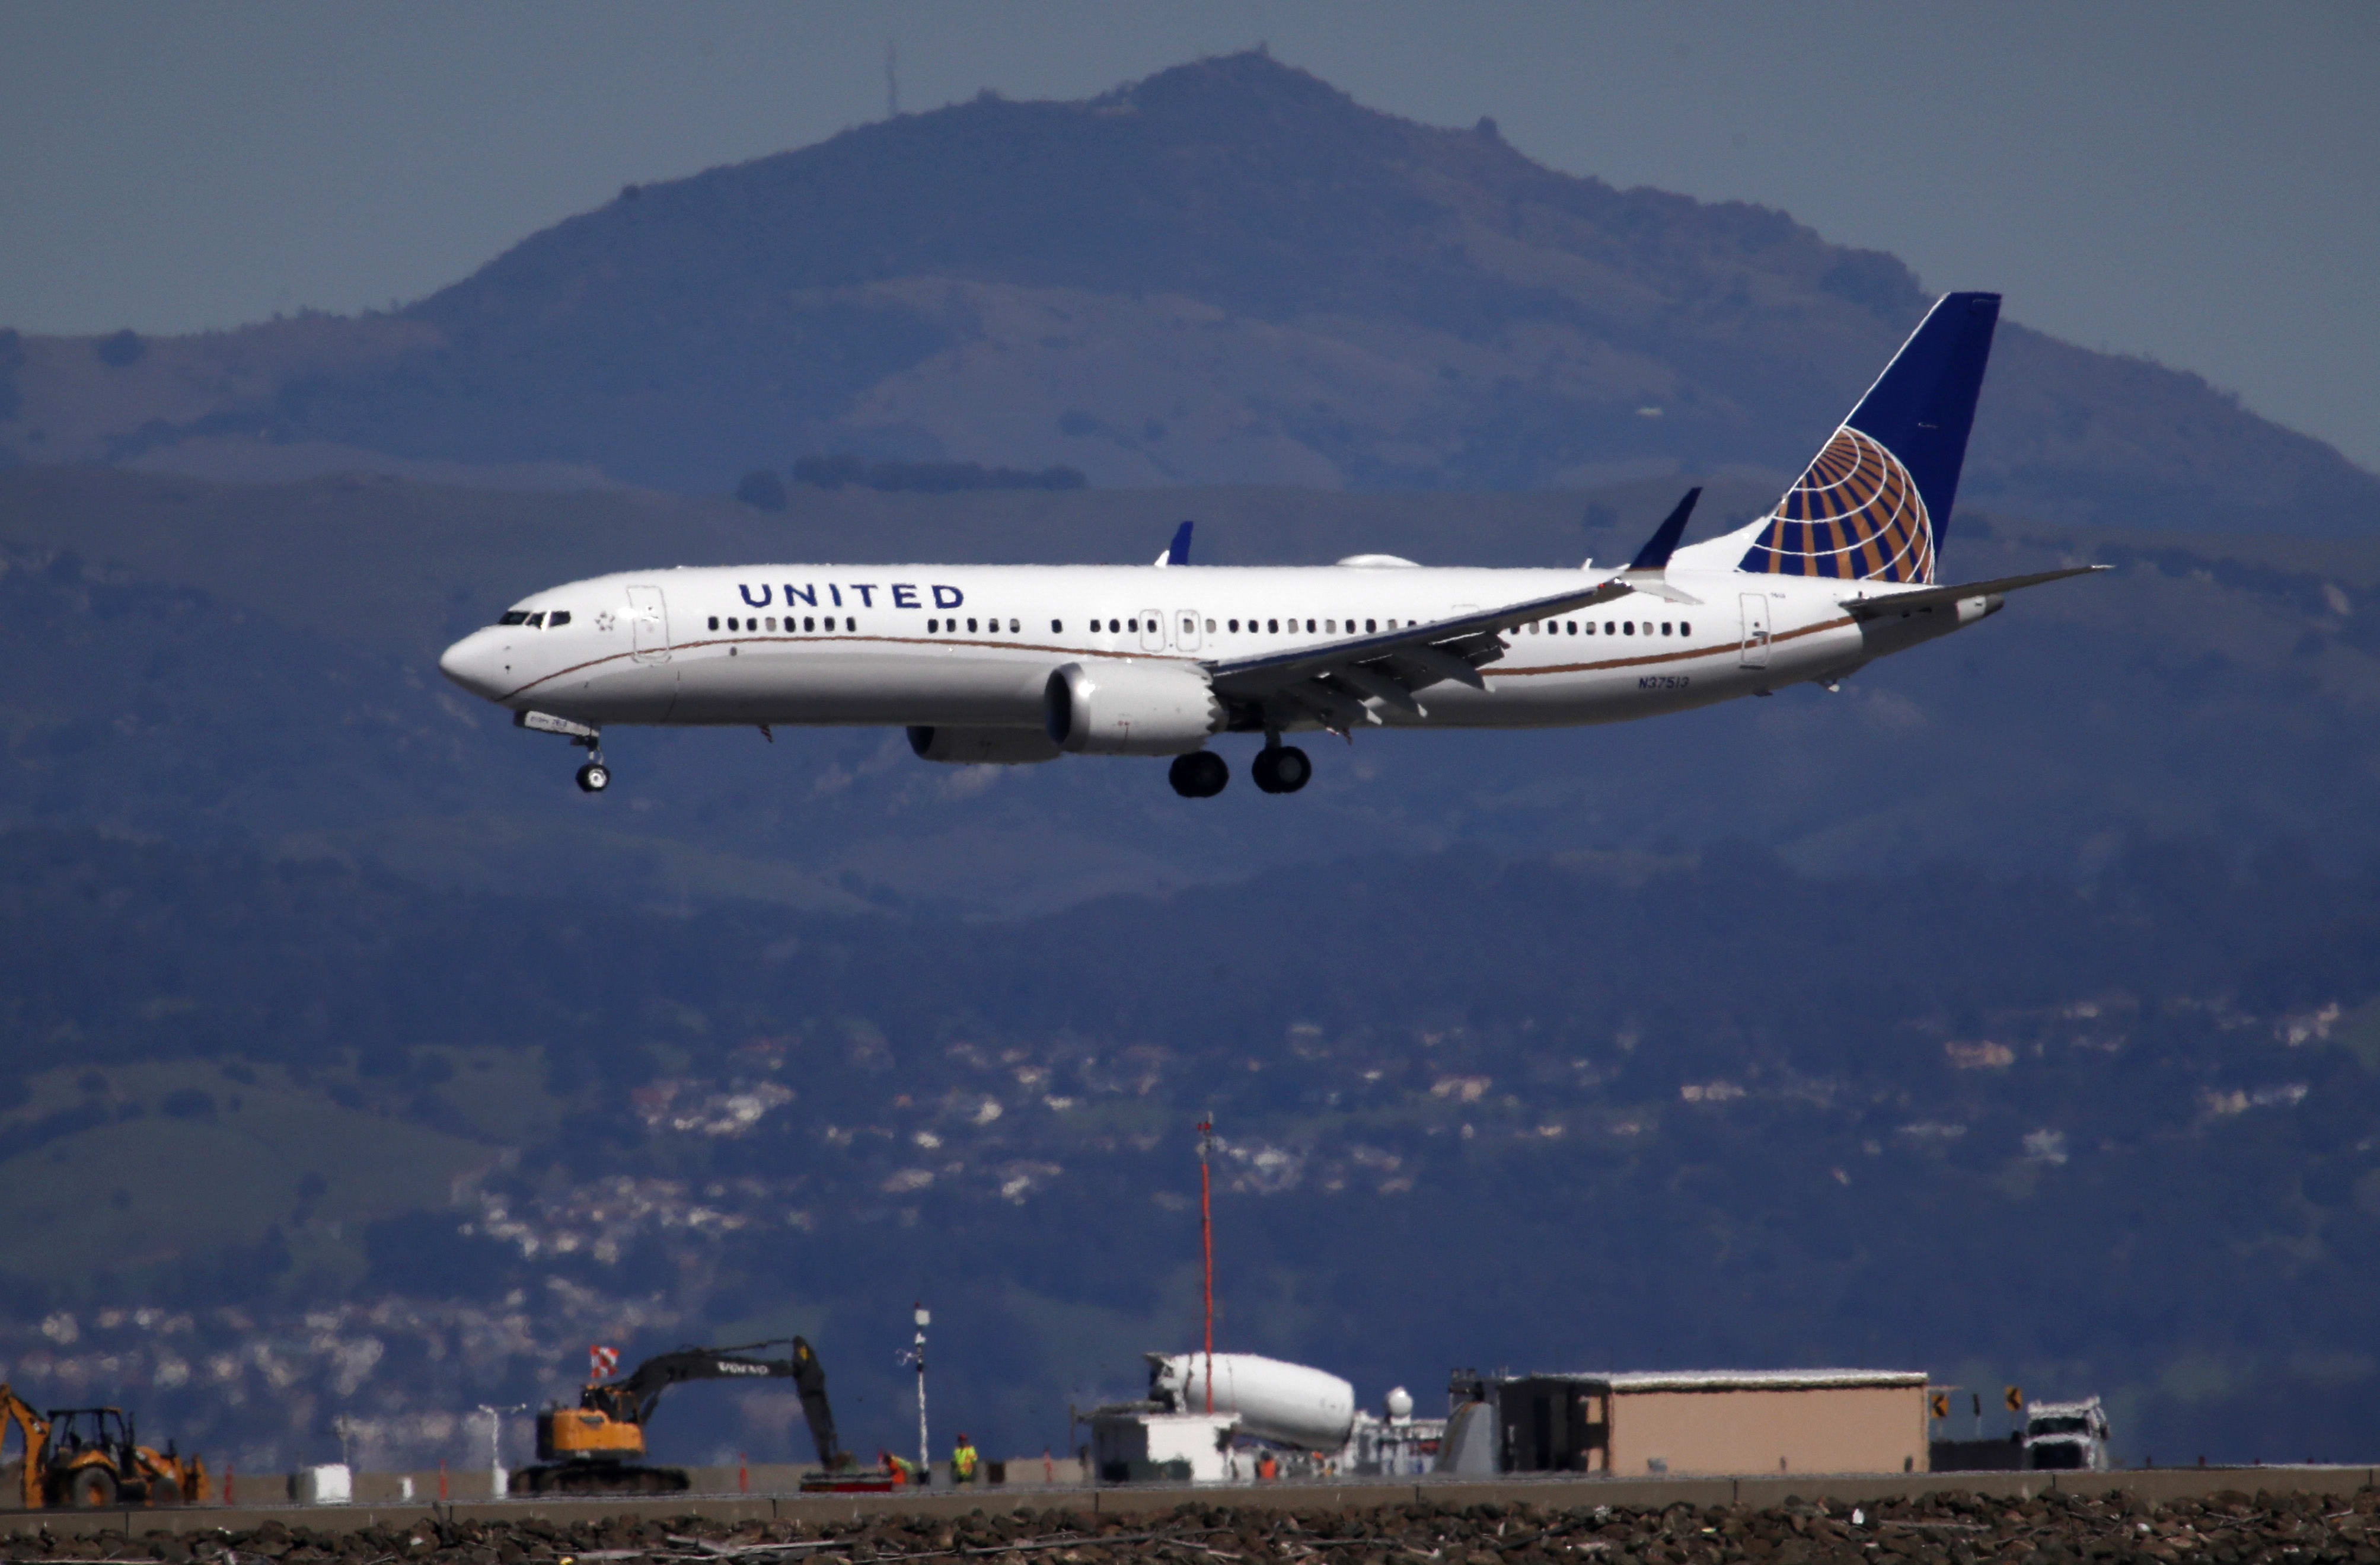 United Airlines pulls Boeing 737 Max from schedules until Dec. 19